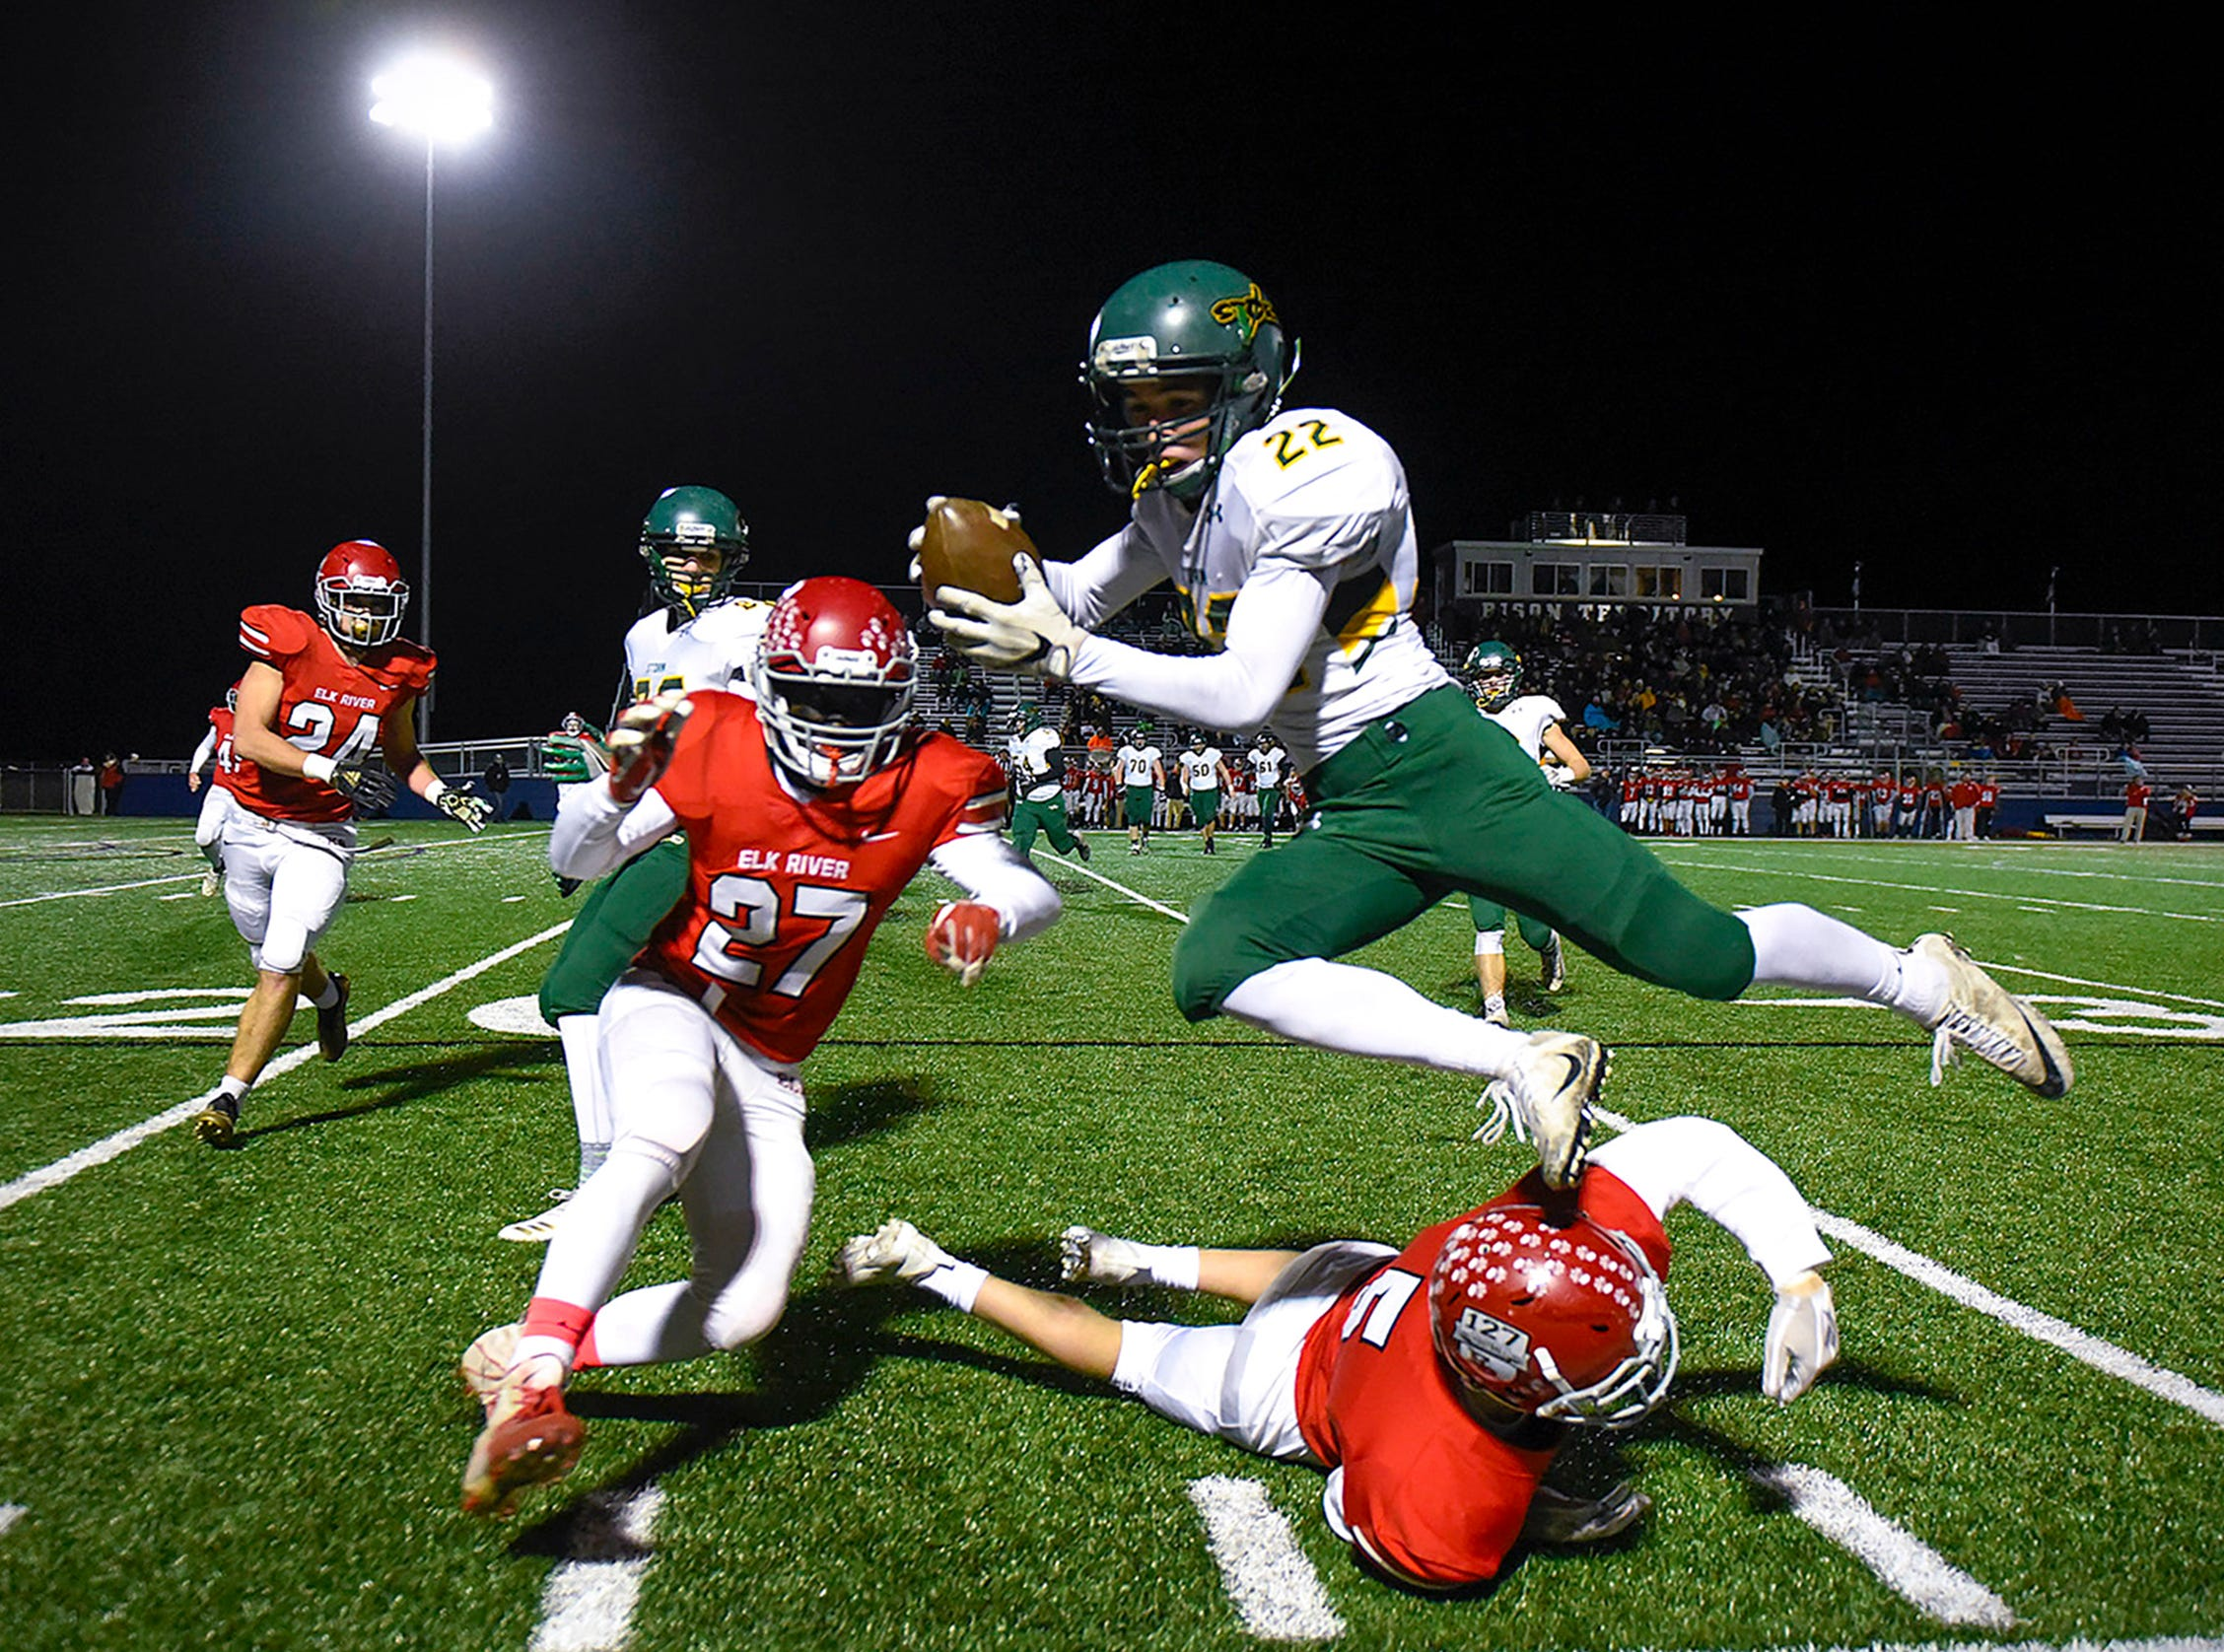 Sauk Rapids wide receiver Christian Rodriguez if forced out of bounds by Elk River during the first half Friday, Nov. 2, in the Section 6-5A championship at Buffalo High School.